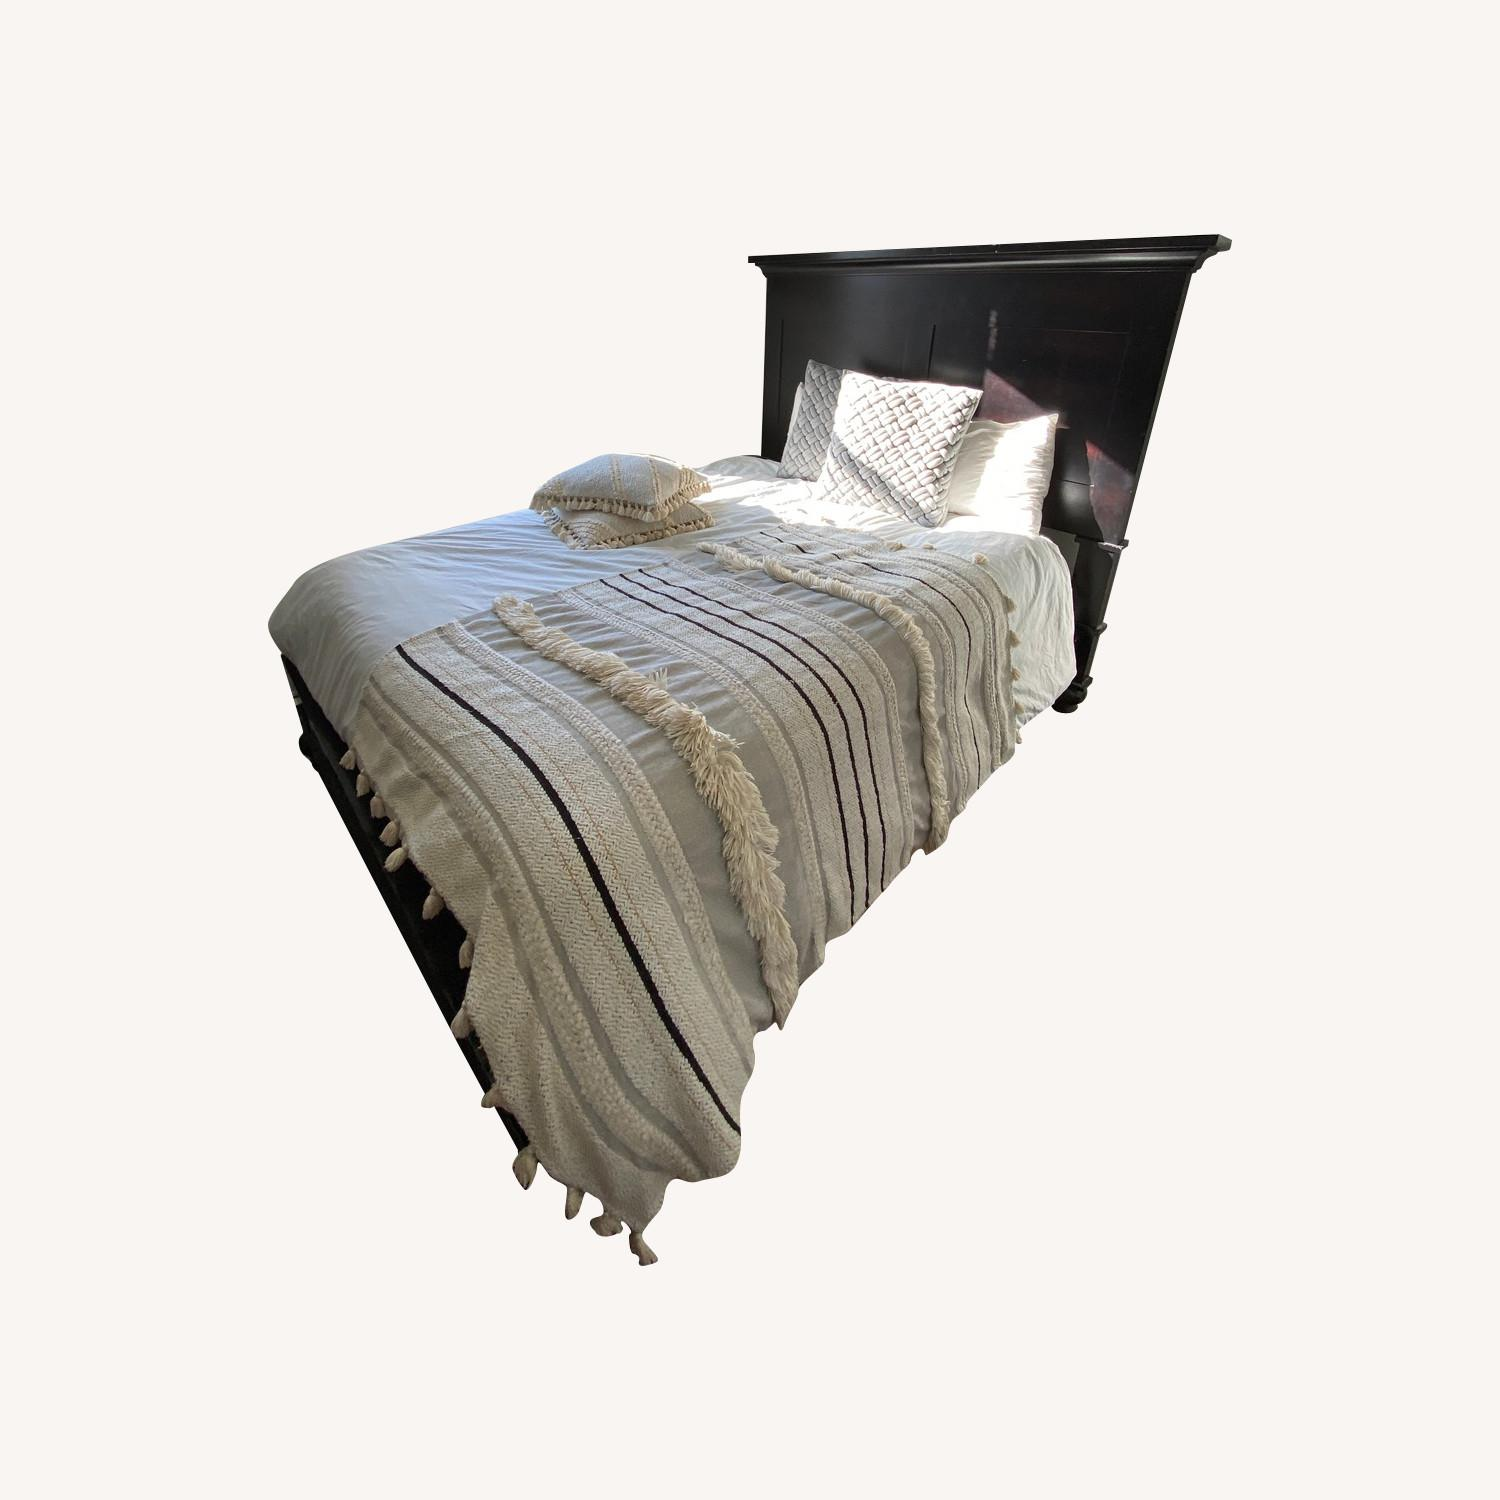 Restoration Hardware Queen-Size Bed Frame - image-0